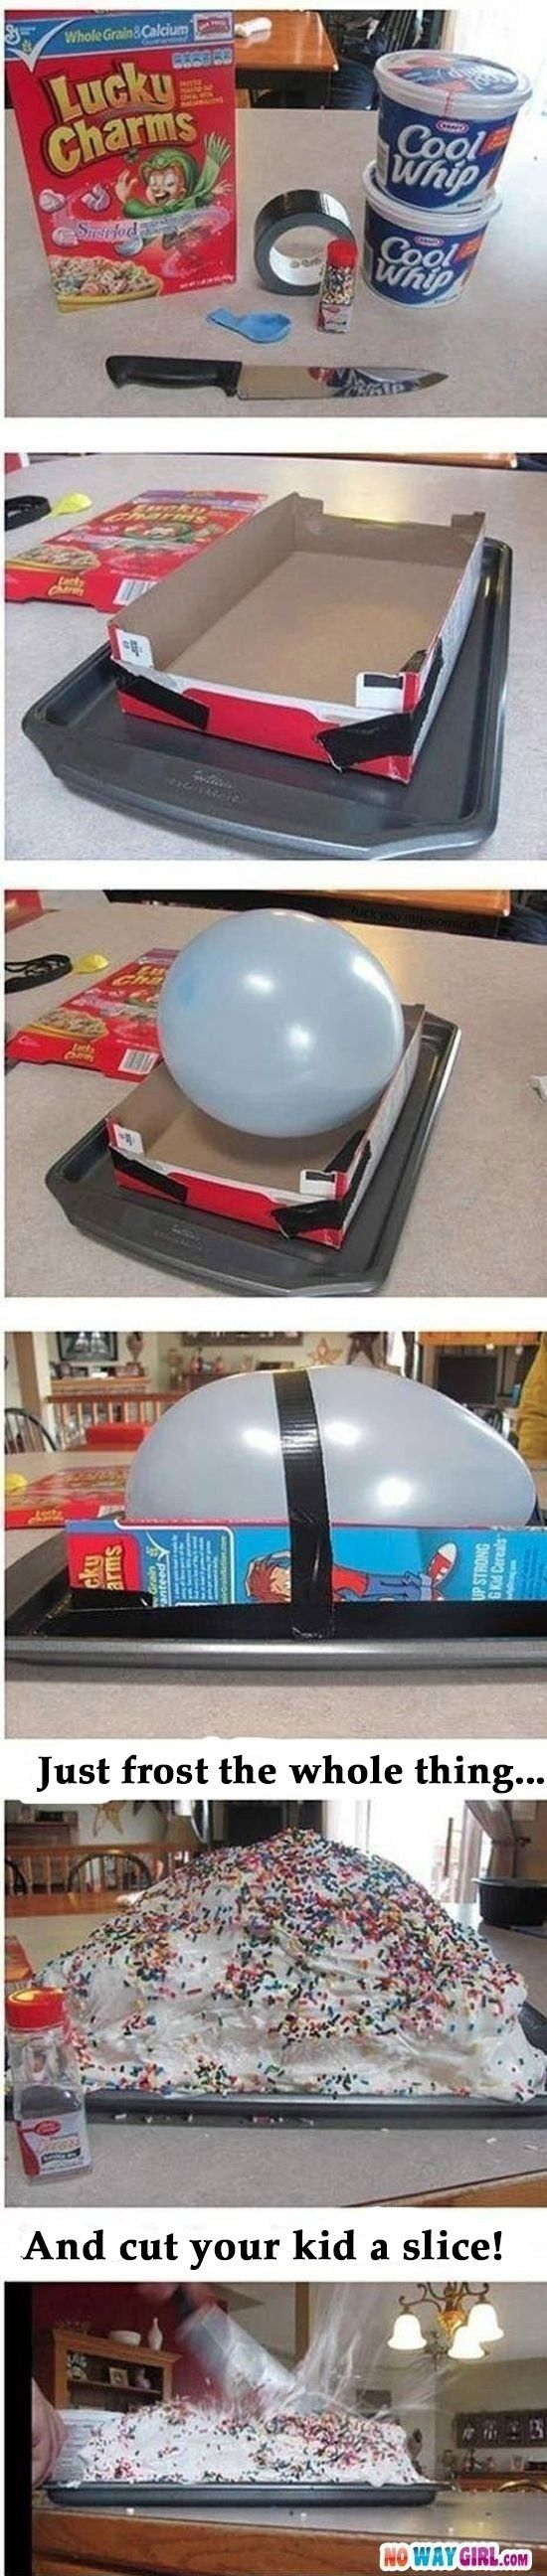 Lastly, if you're feeling really ambitious you can try this outrageous prank. | 37 Next-Level April Fools' Day Pranks Your Kids Will Never Forget